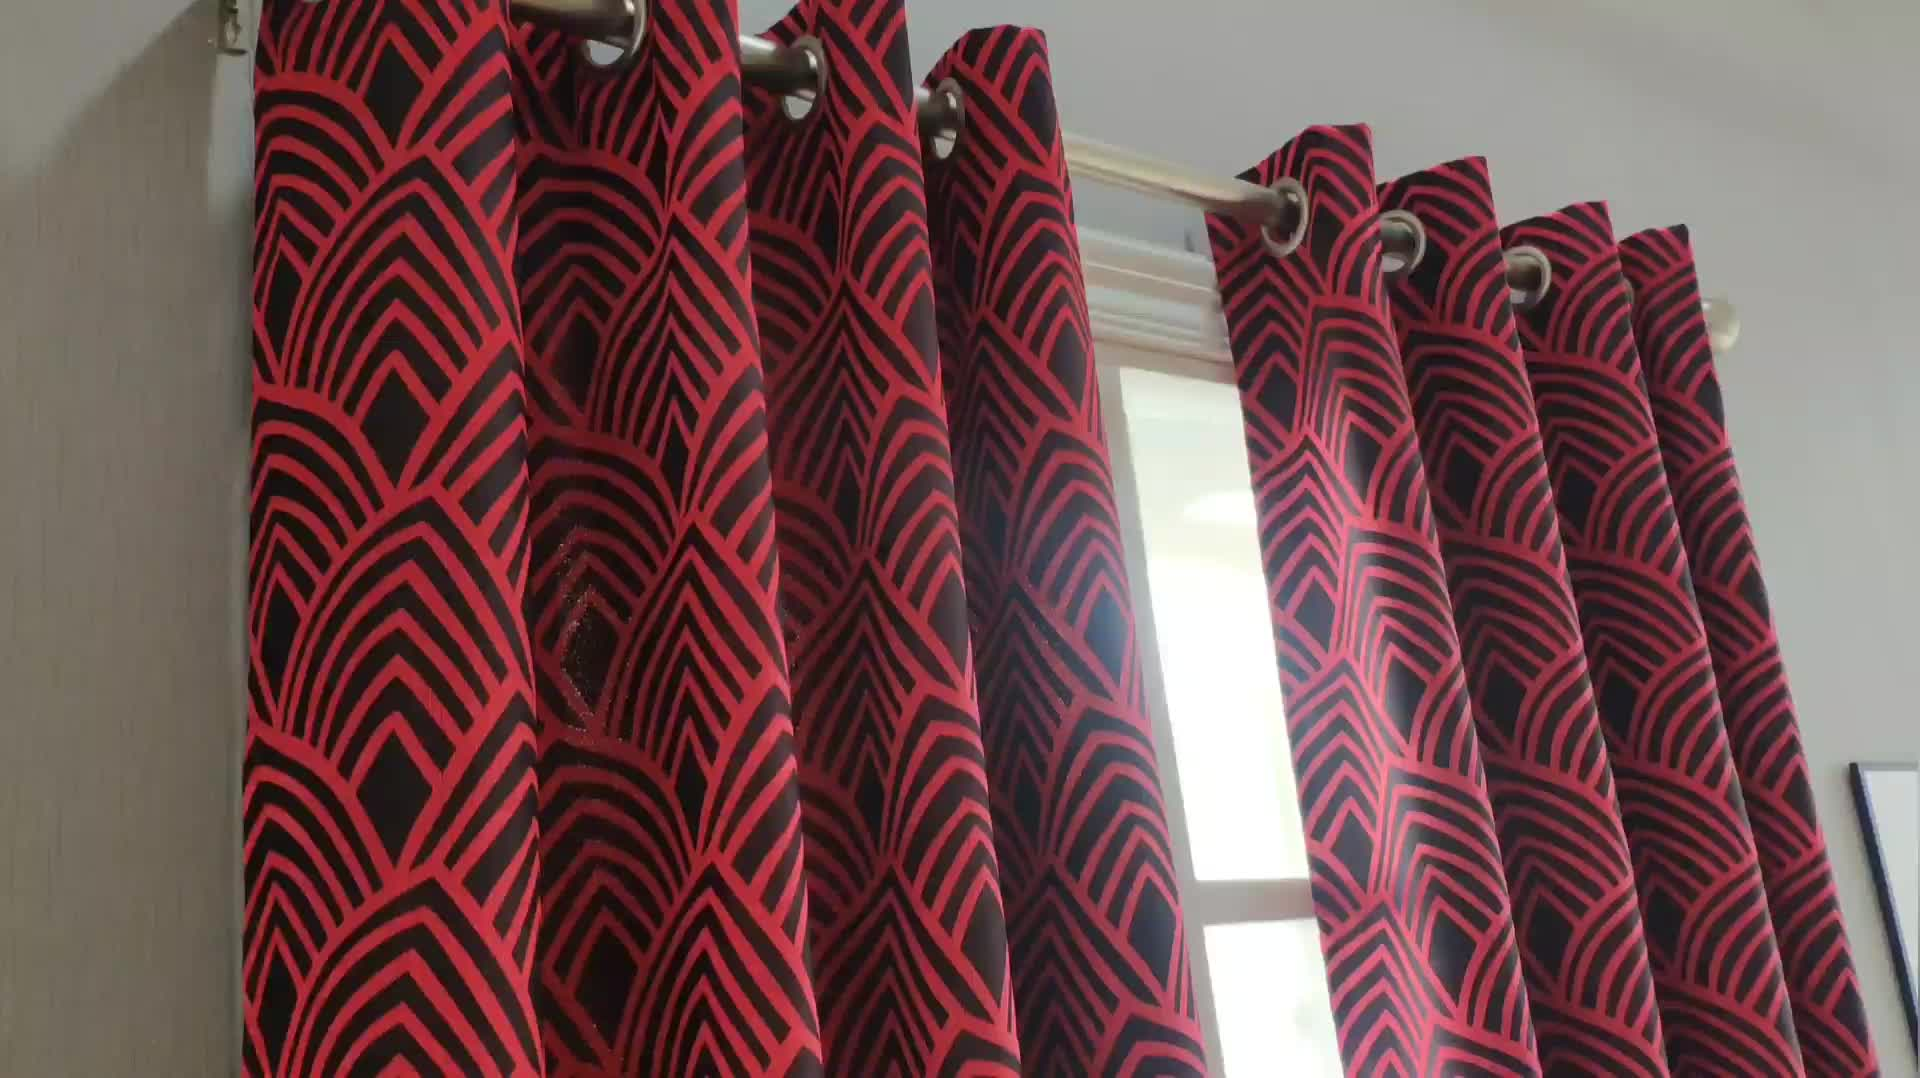 Hot selling Luxury Latest popular  High quality Jacquard  Curtain  for Bedrooms, Living Rooms